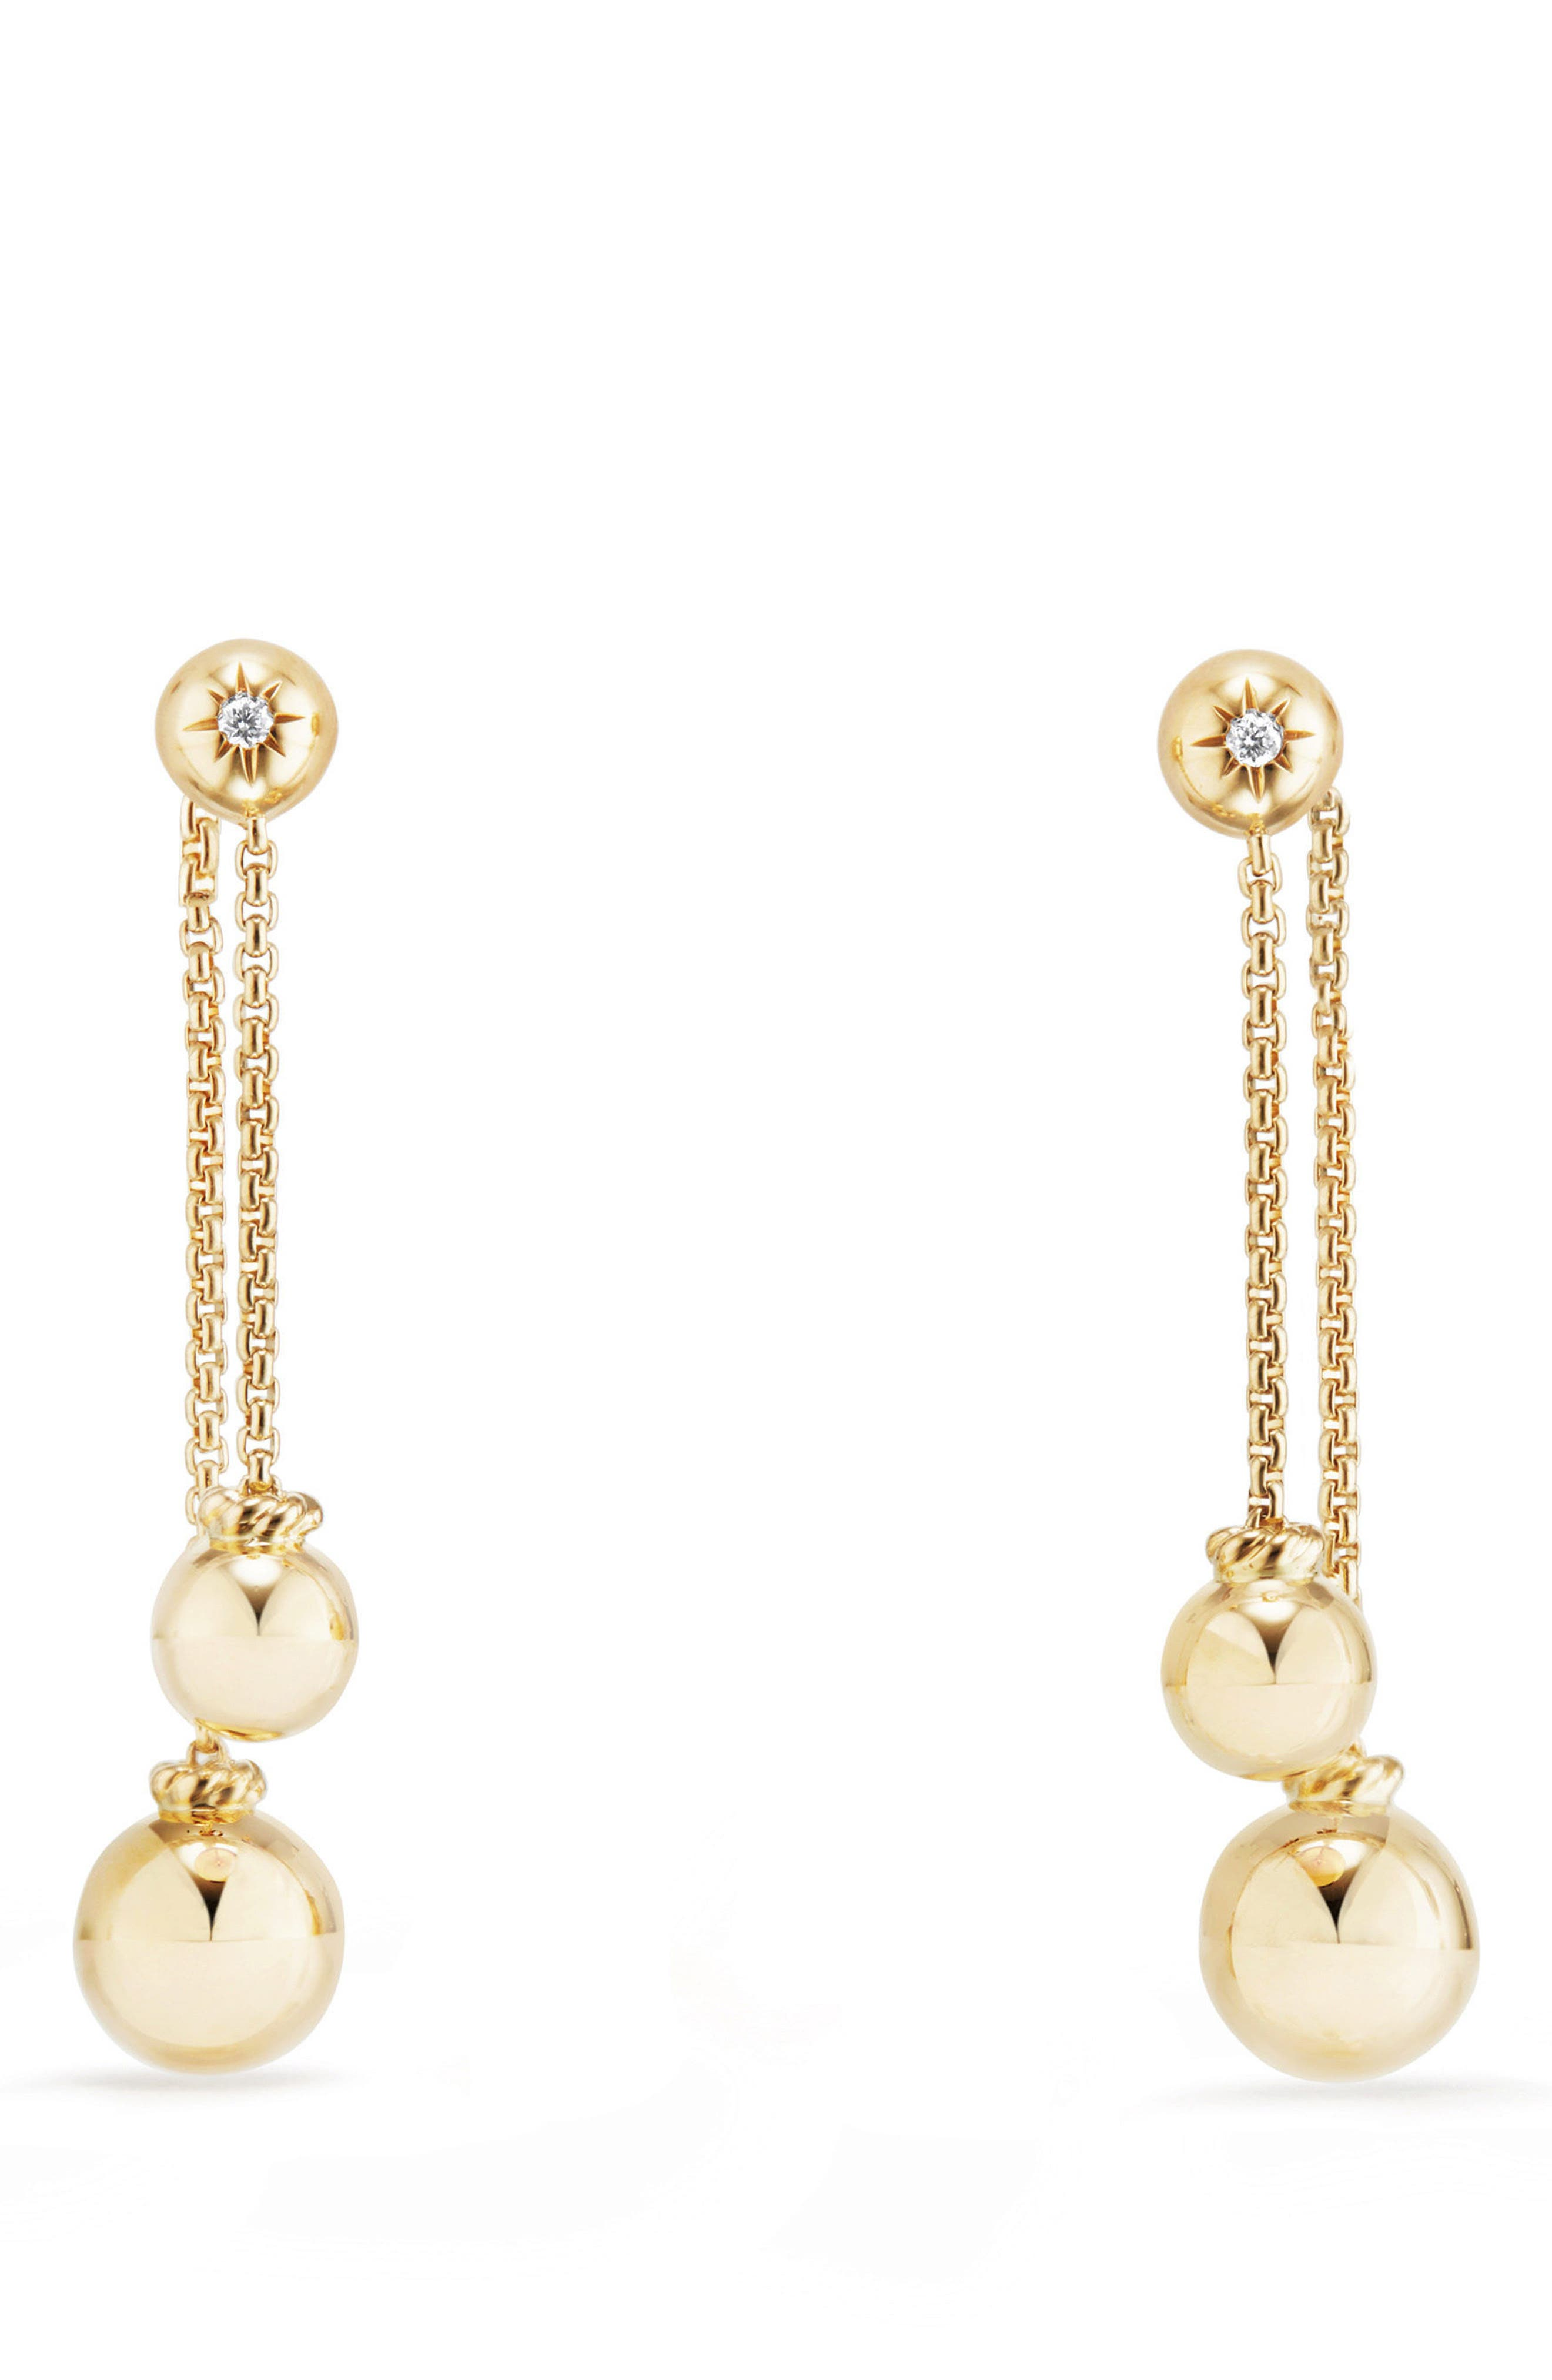 Solari Chain Drop Earrings with Diamonds in 18K Gold,                             Main thumbnail 1, color,                             Yellow Gold